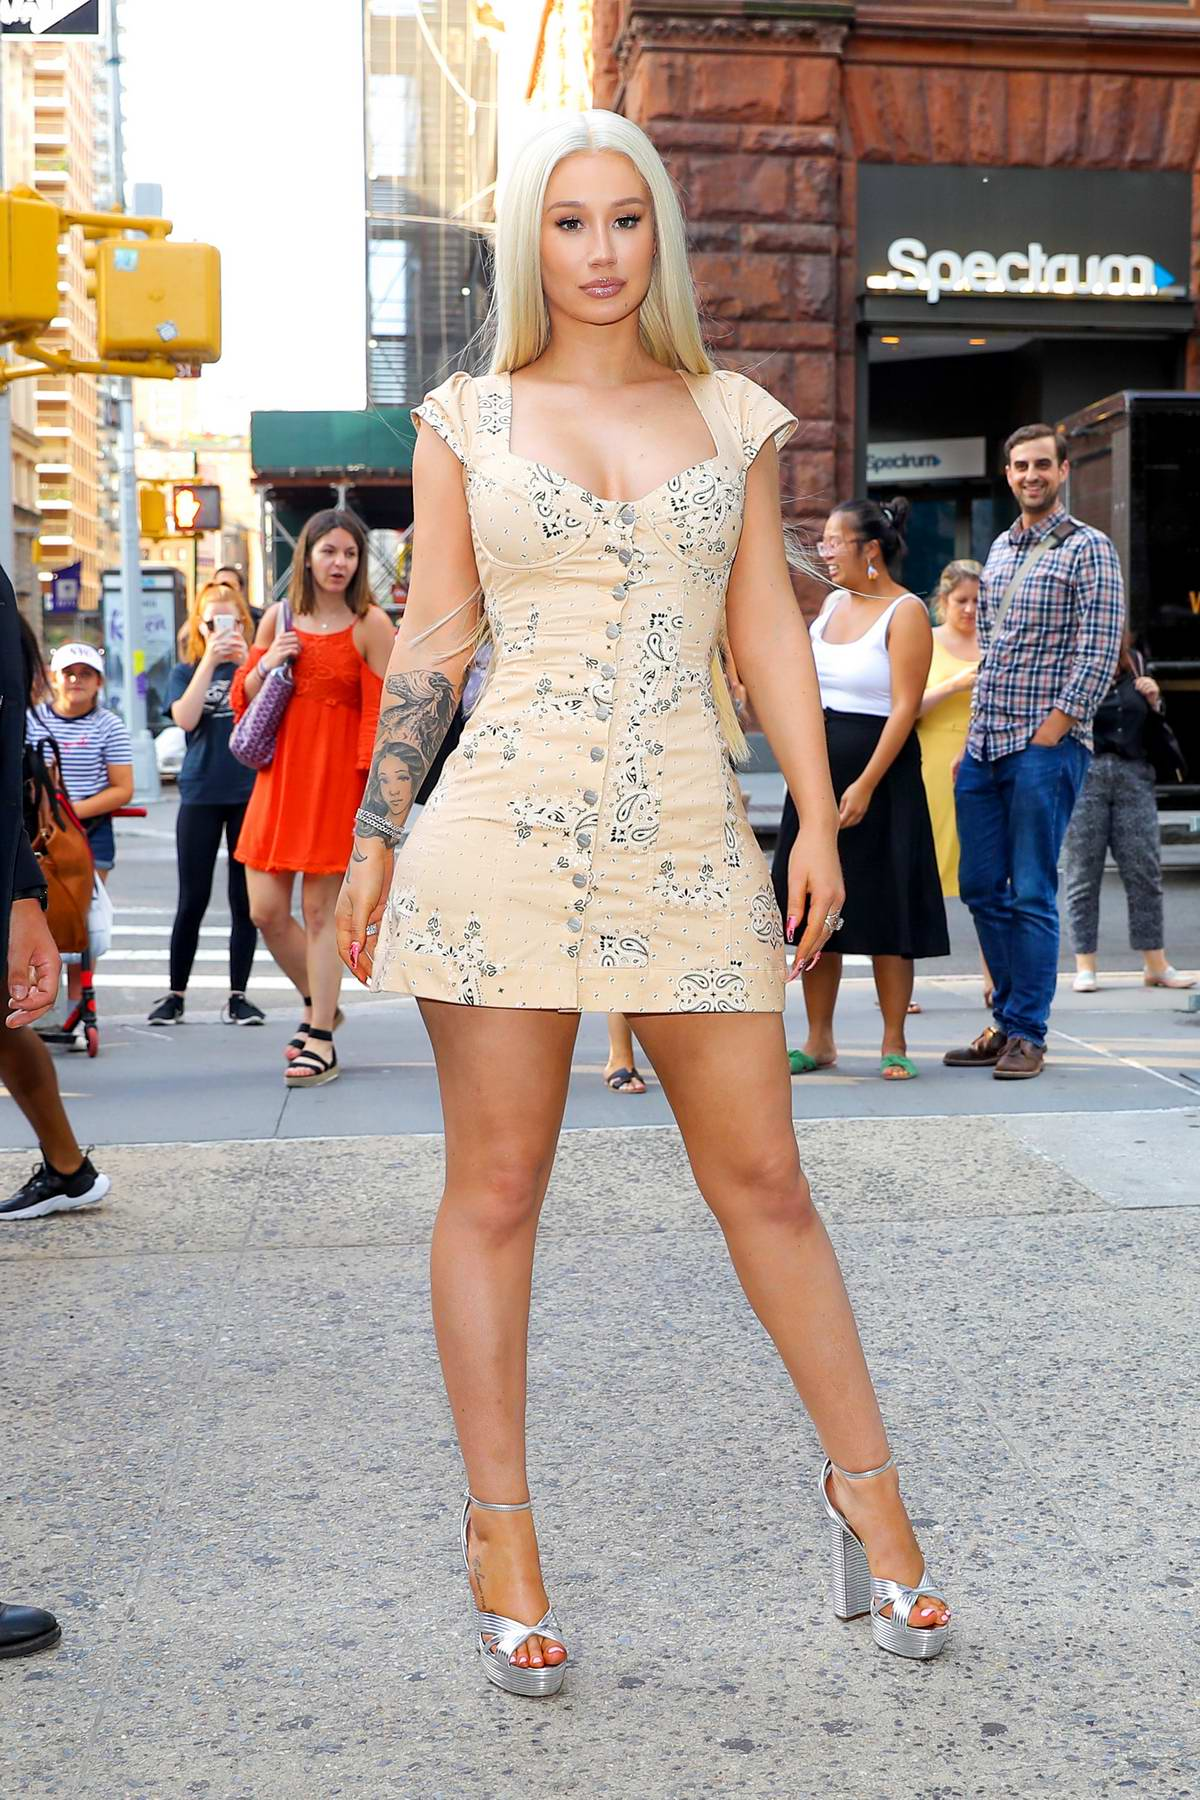 Iggy Azalea strikes a pose in a low-cut minidress as she arrives at the AOL Build Studios in New York City